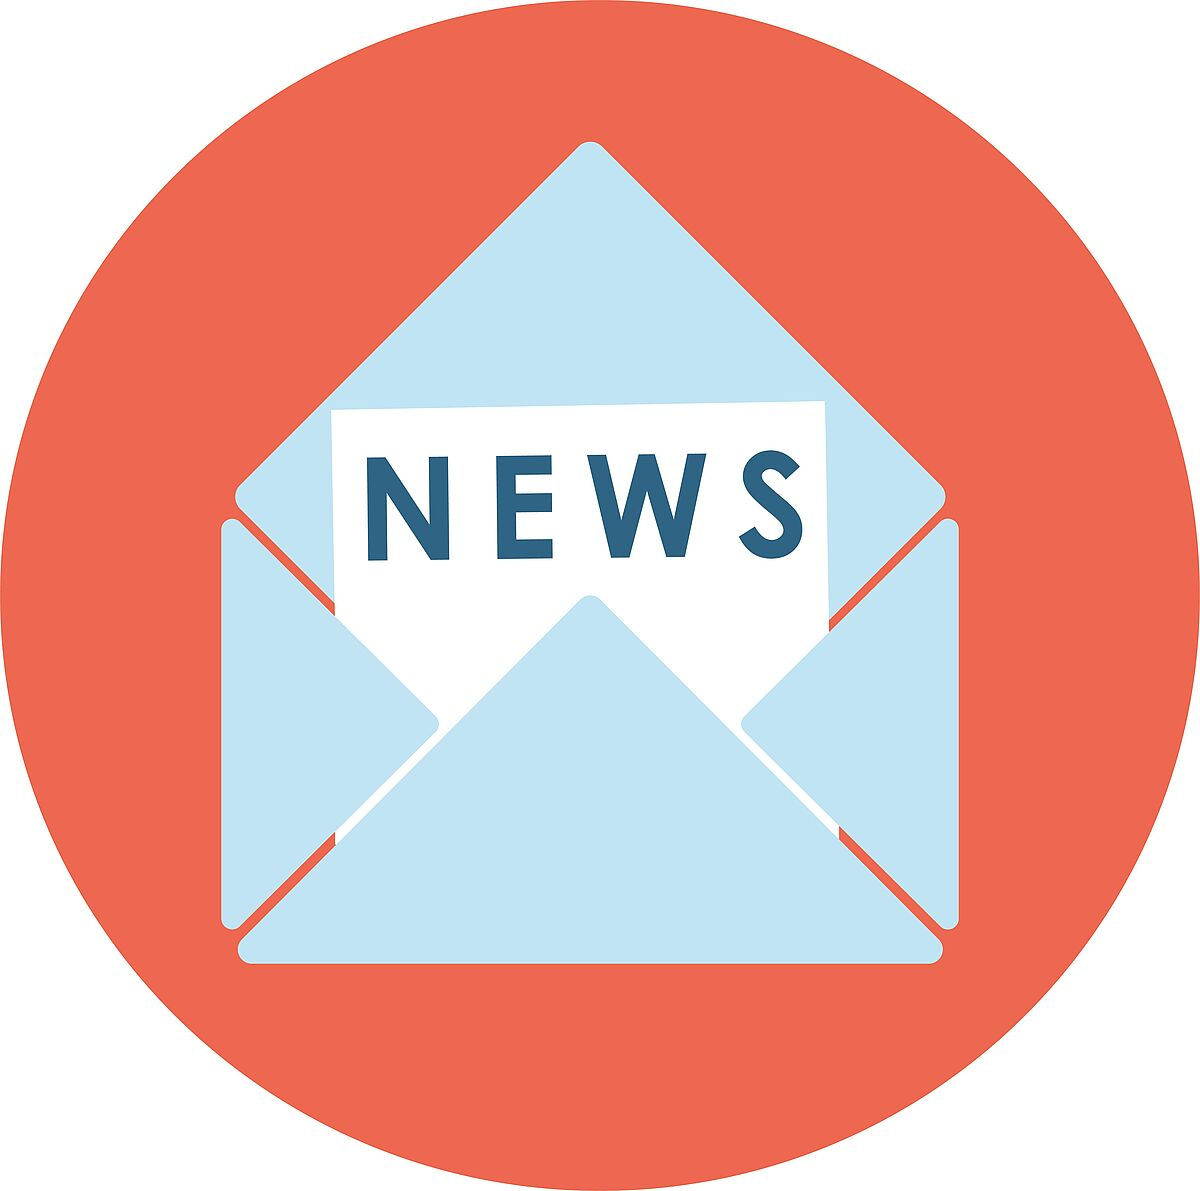 Subscribe to our new NGS newsletter!